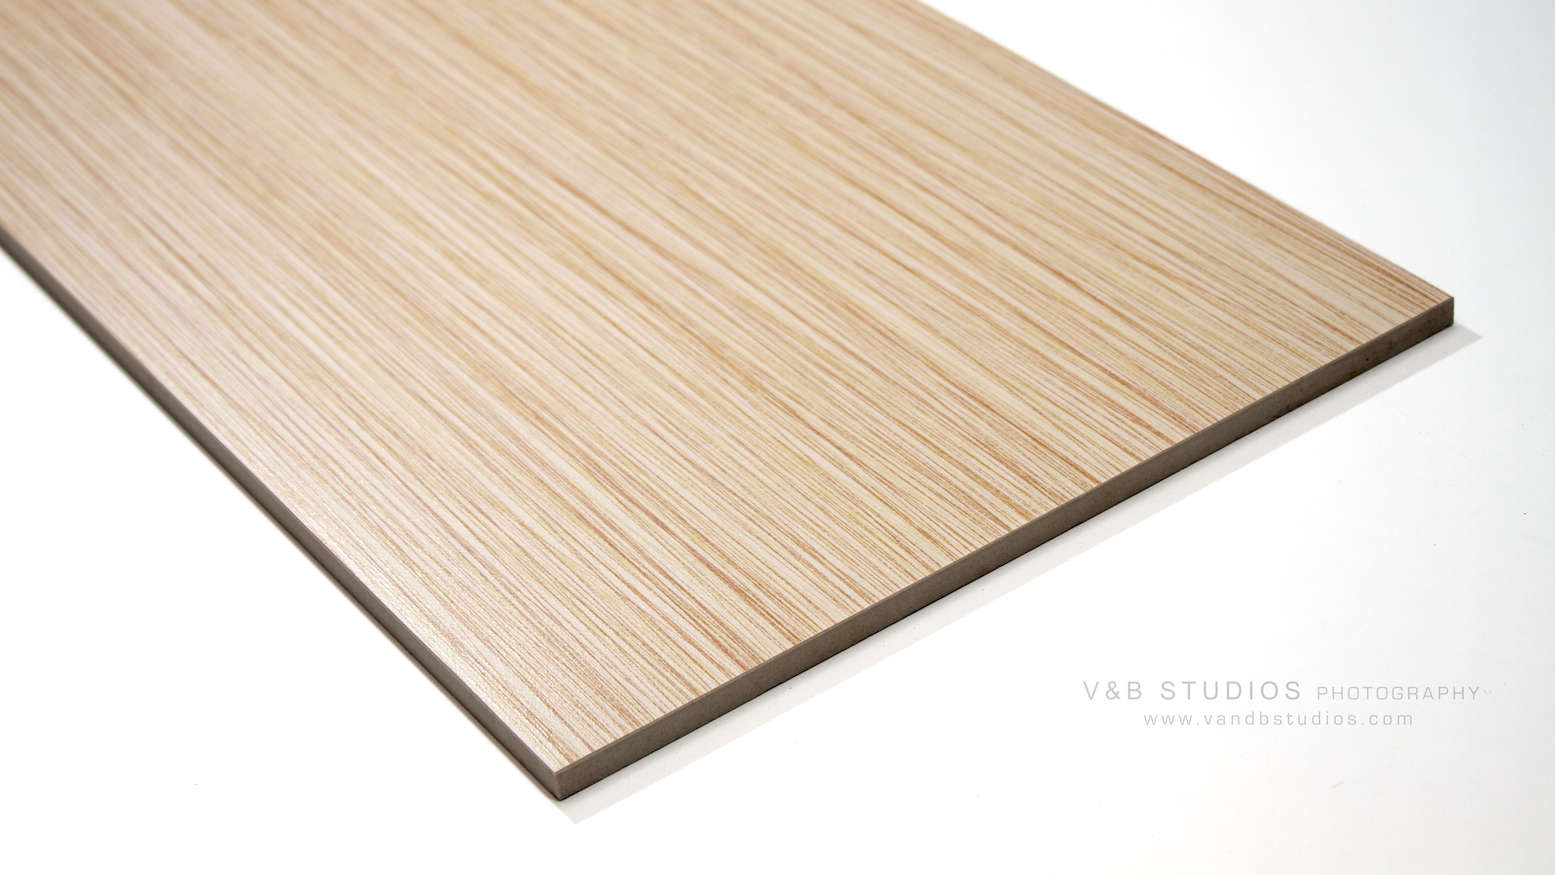 Bamboo Pattern Porcelain Tiles 5 Colors Tiledaily